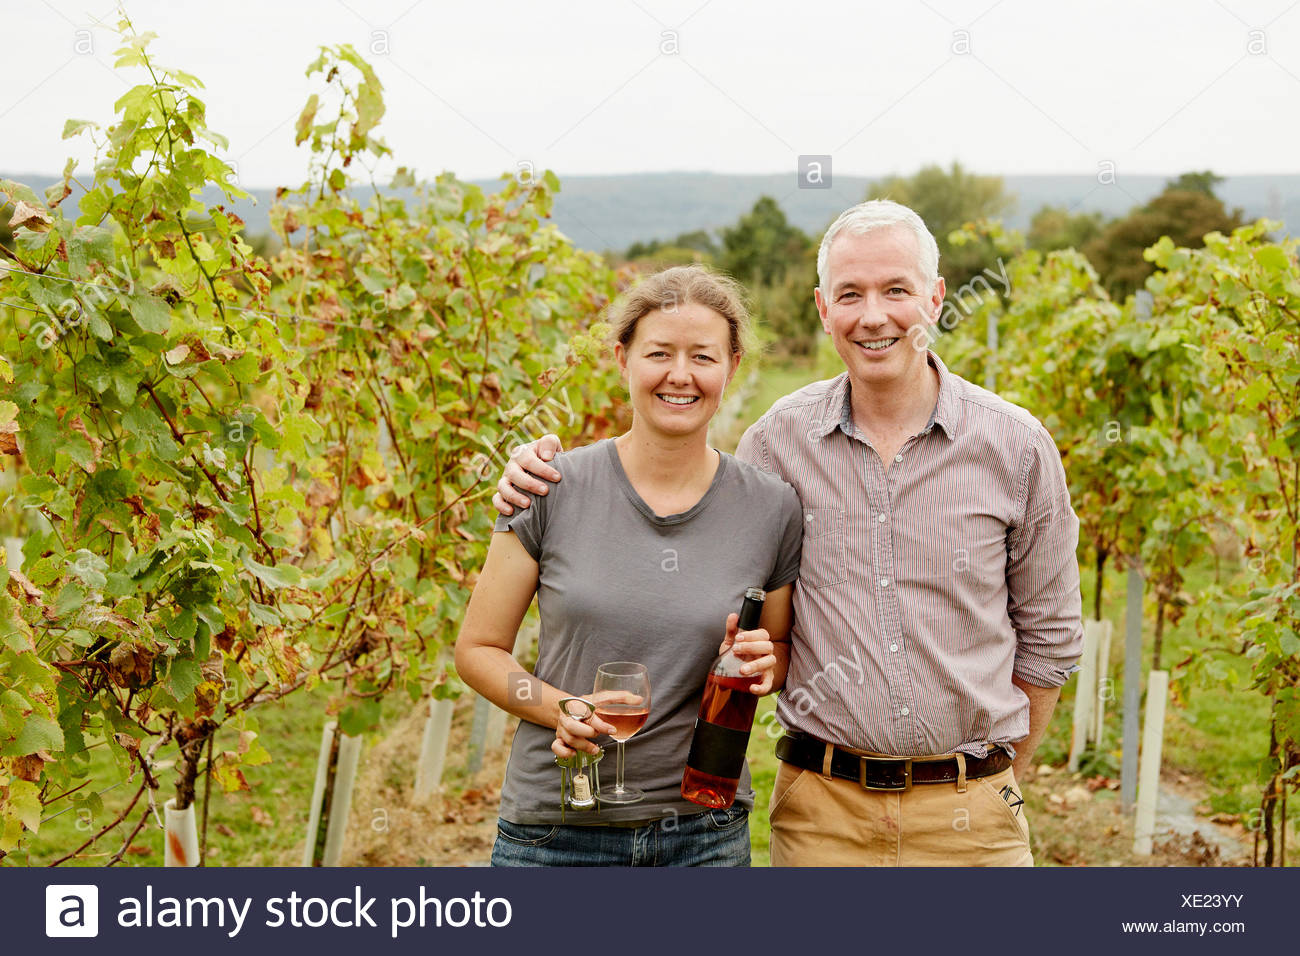 A couple, vineyard founder and her partner standing among the rows of vines. - Stock Image